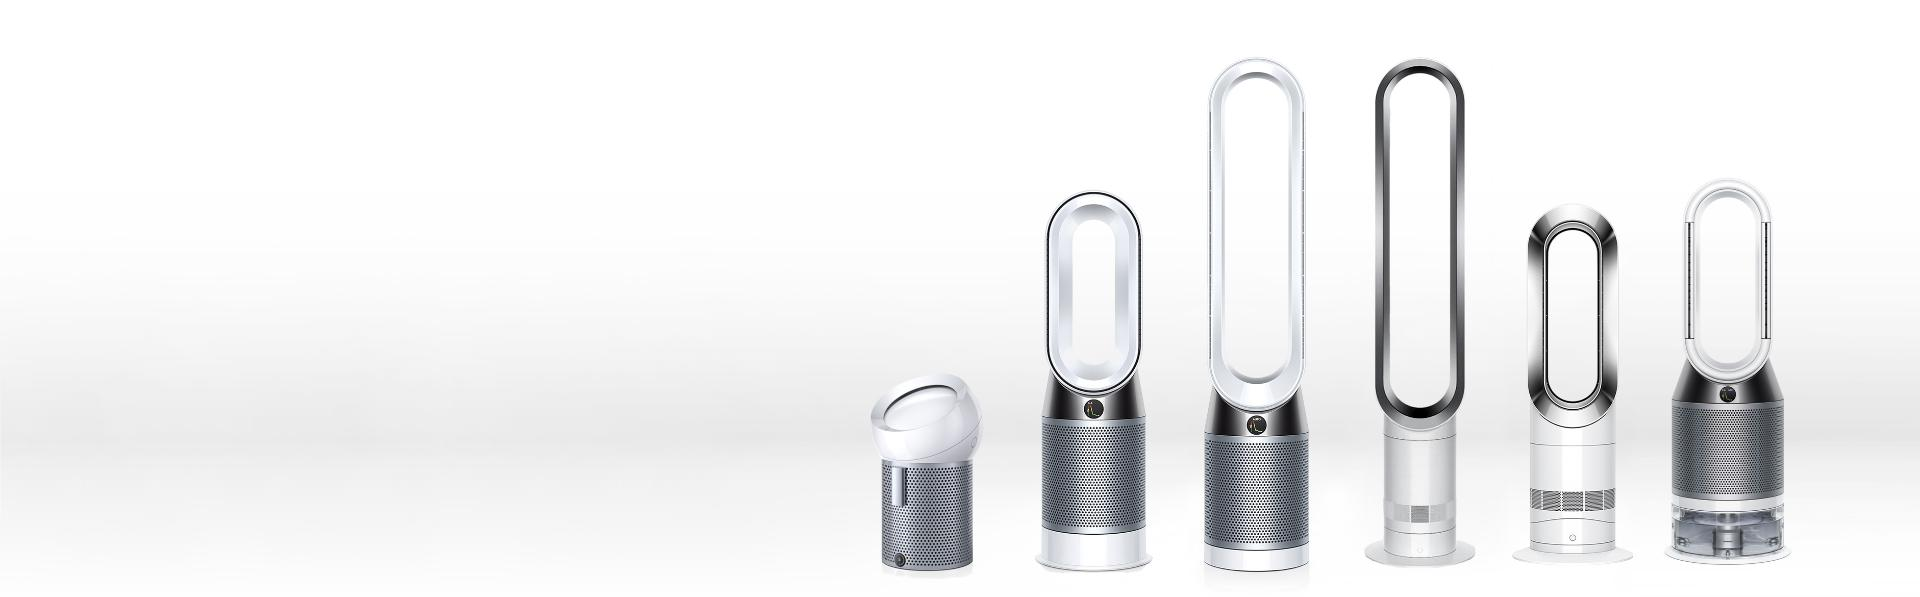 Dyson purifiers, humidifiers, heaters and fans